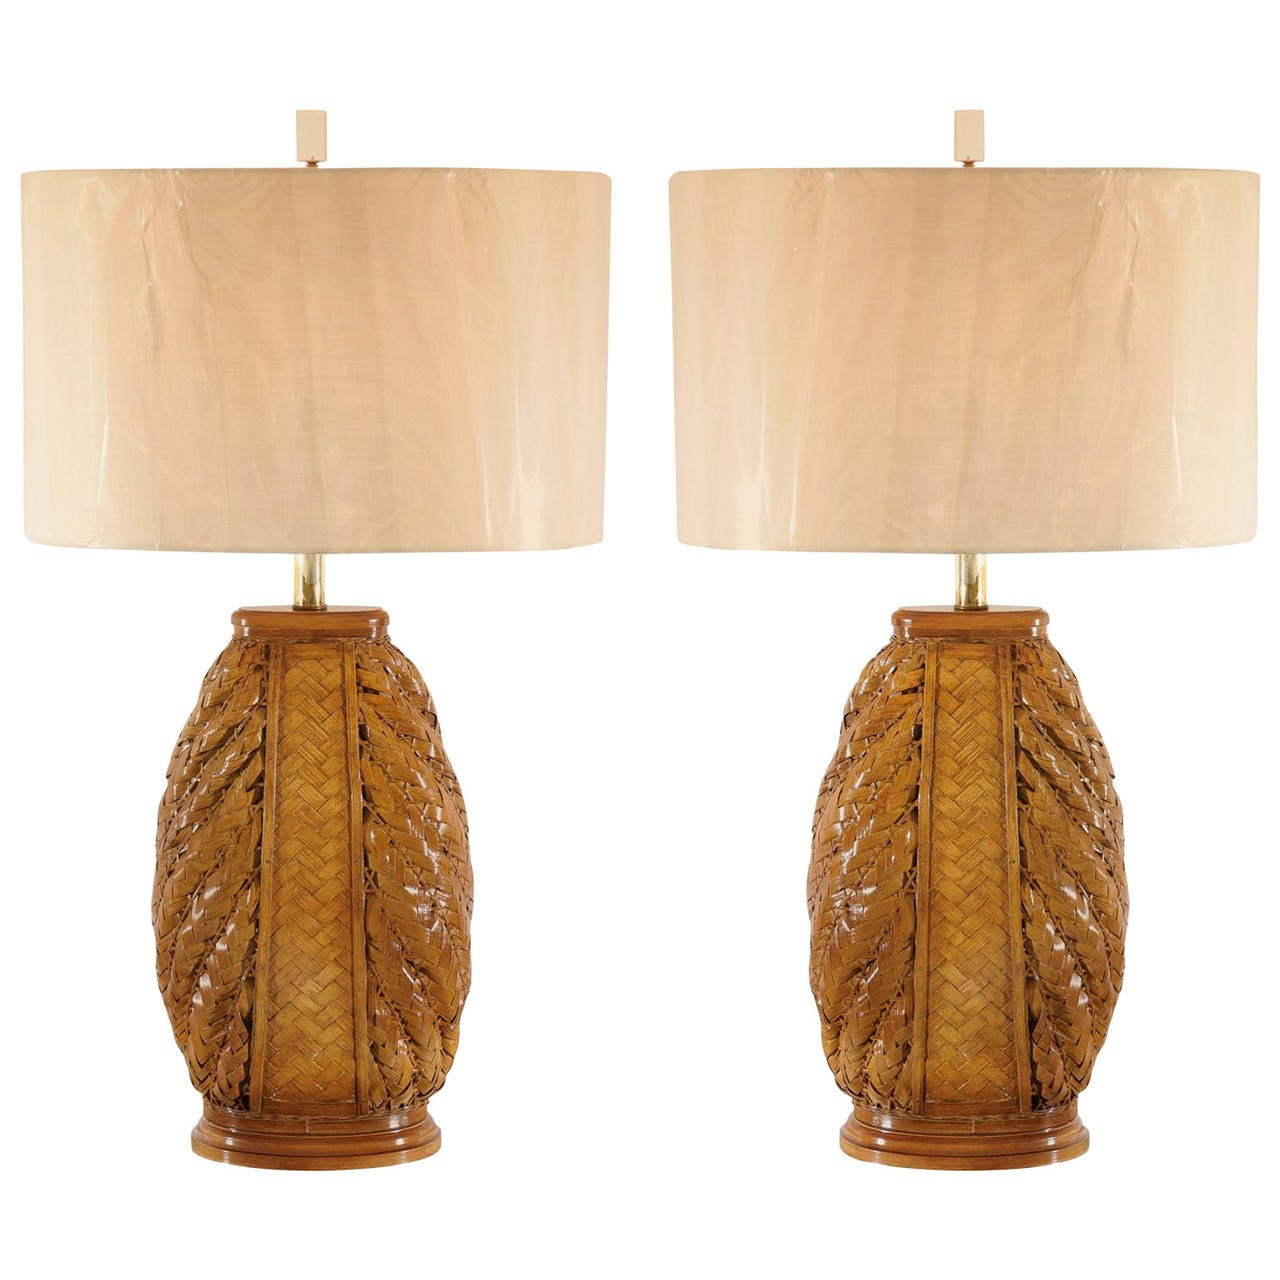 Pair of Modern Rattan Lamps with Brass and Lucite Accents